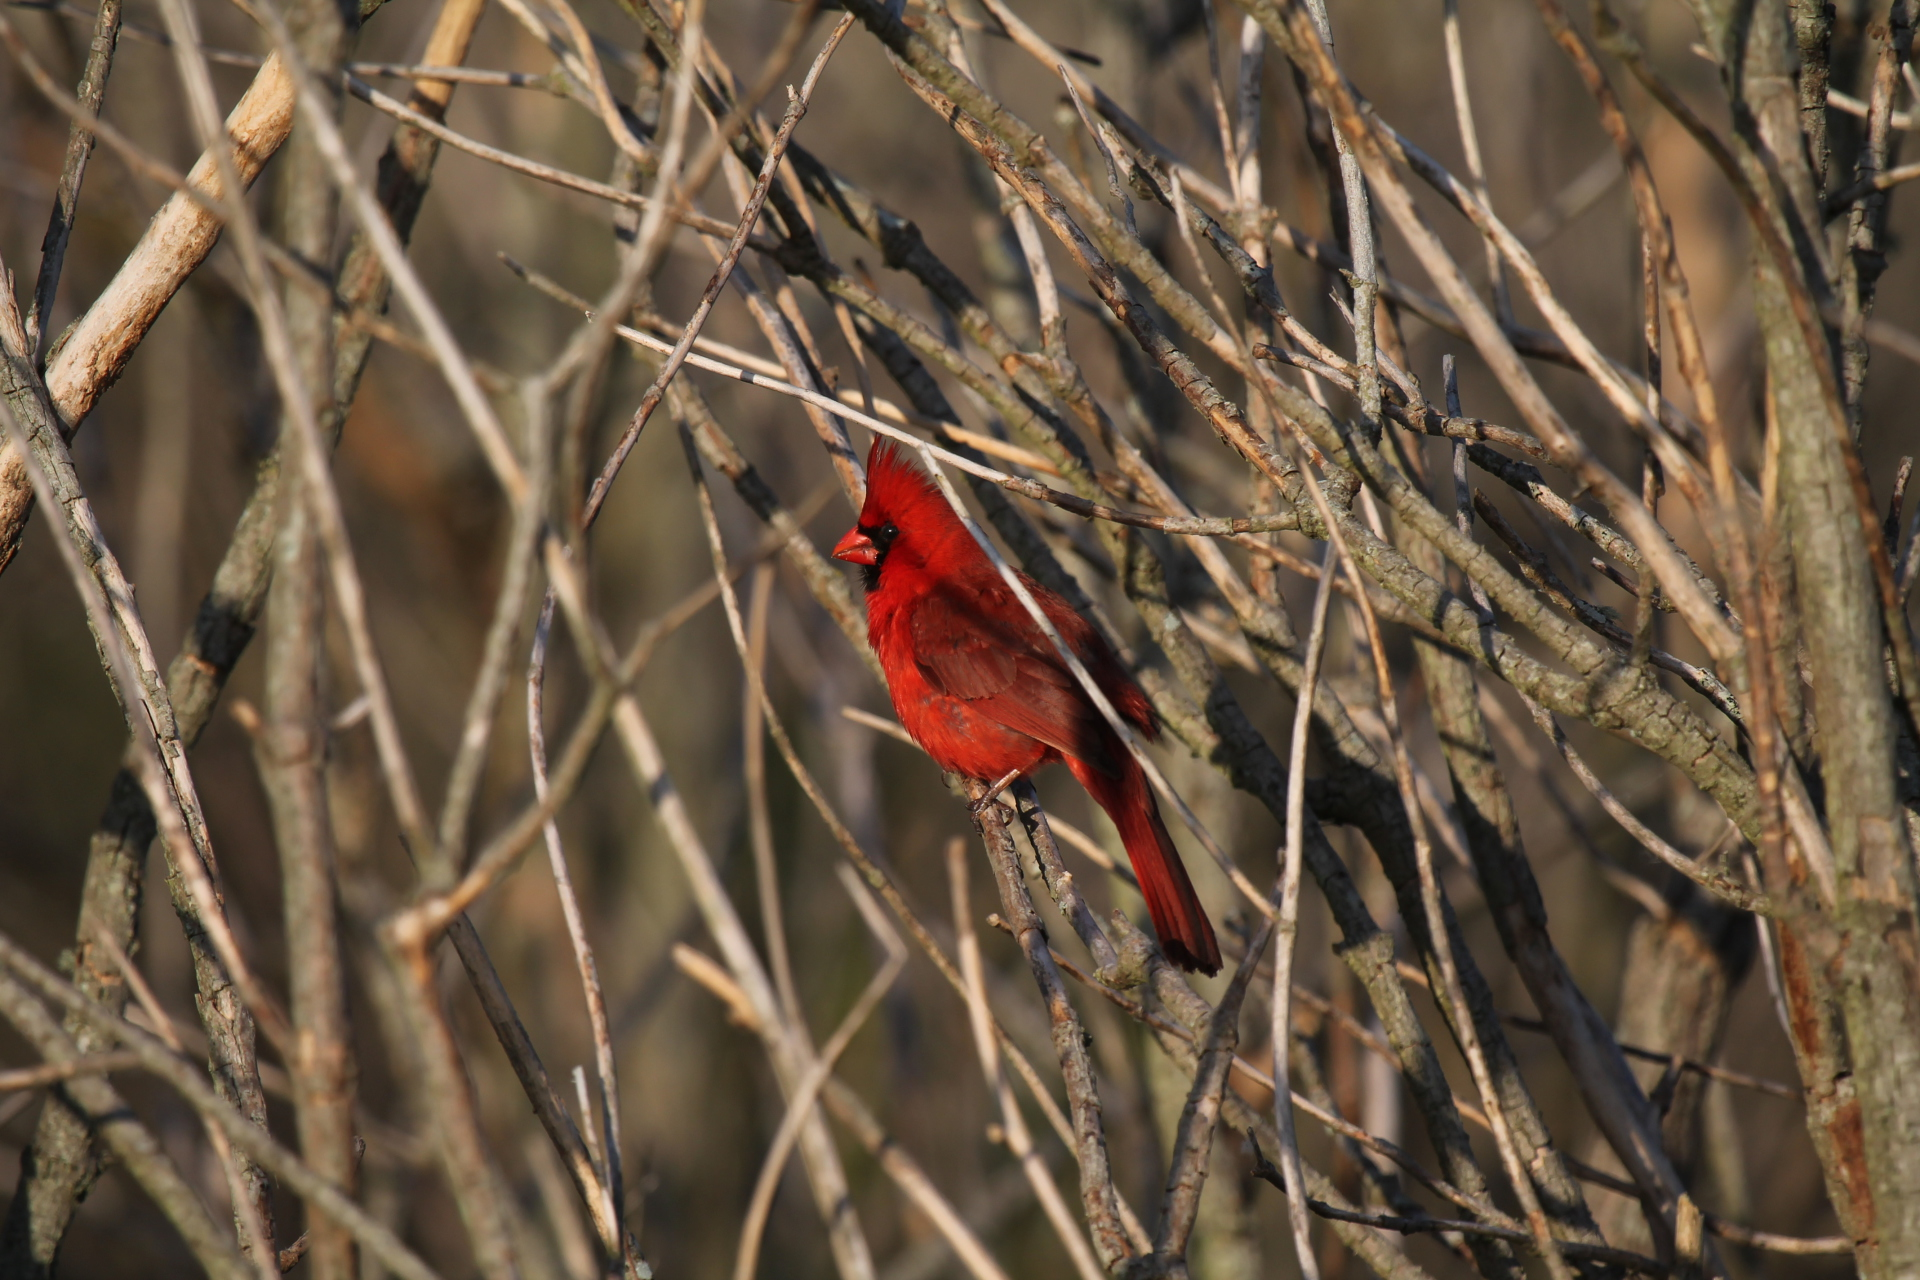 Northern Cardinals Color the Landscape